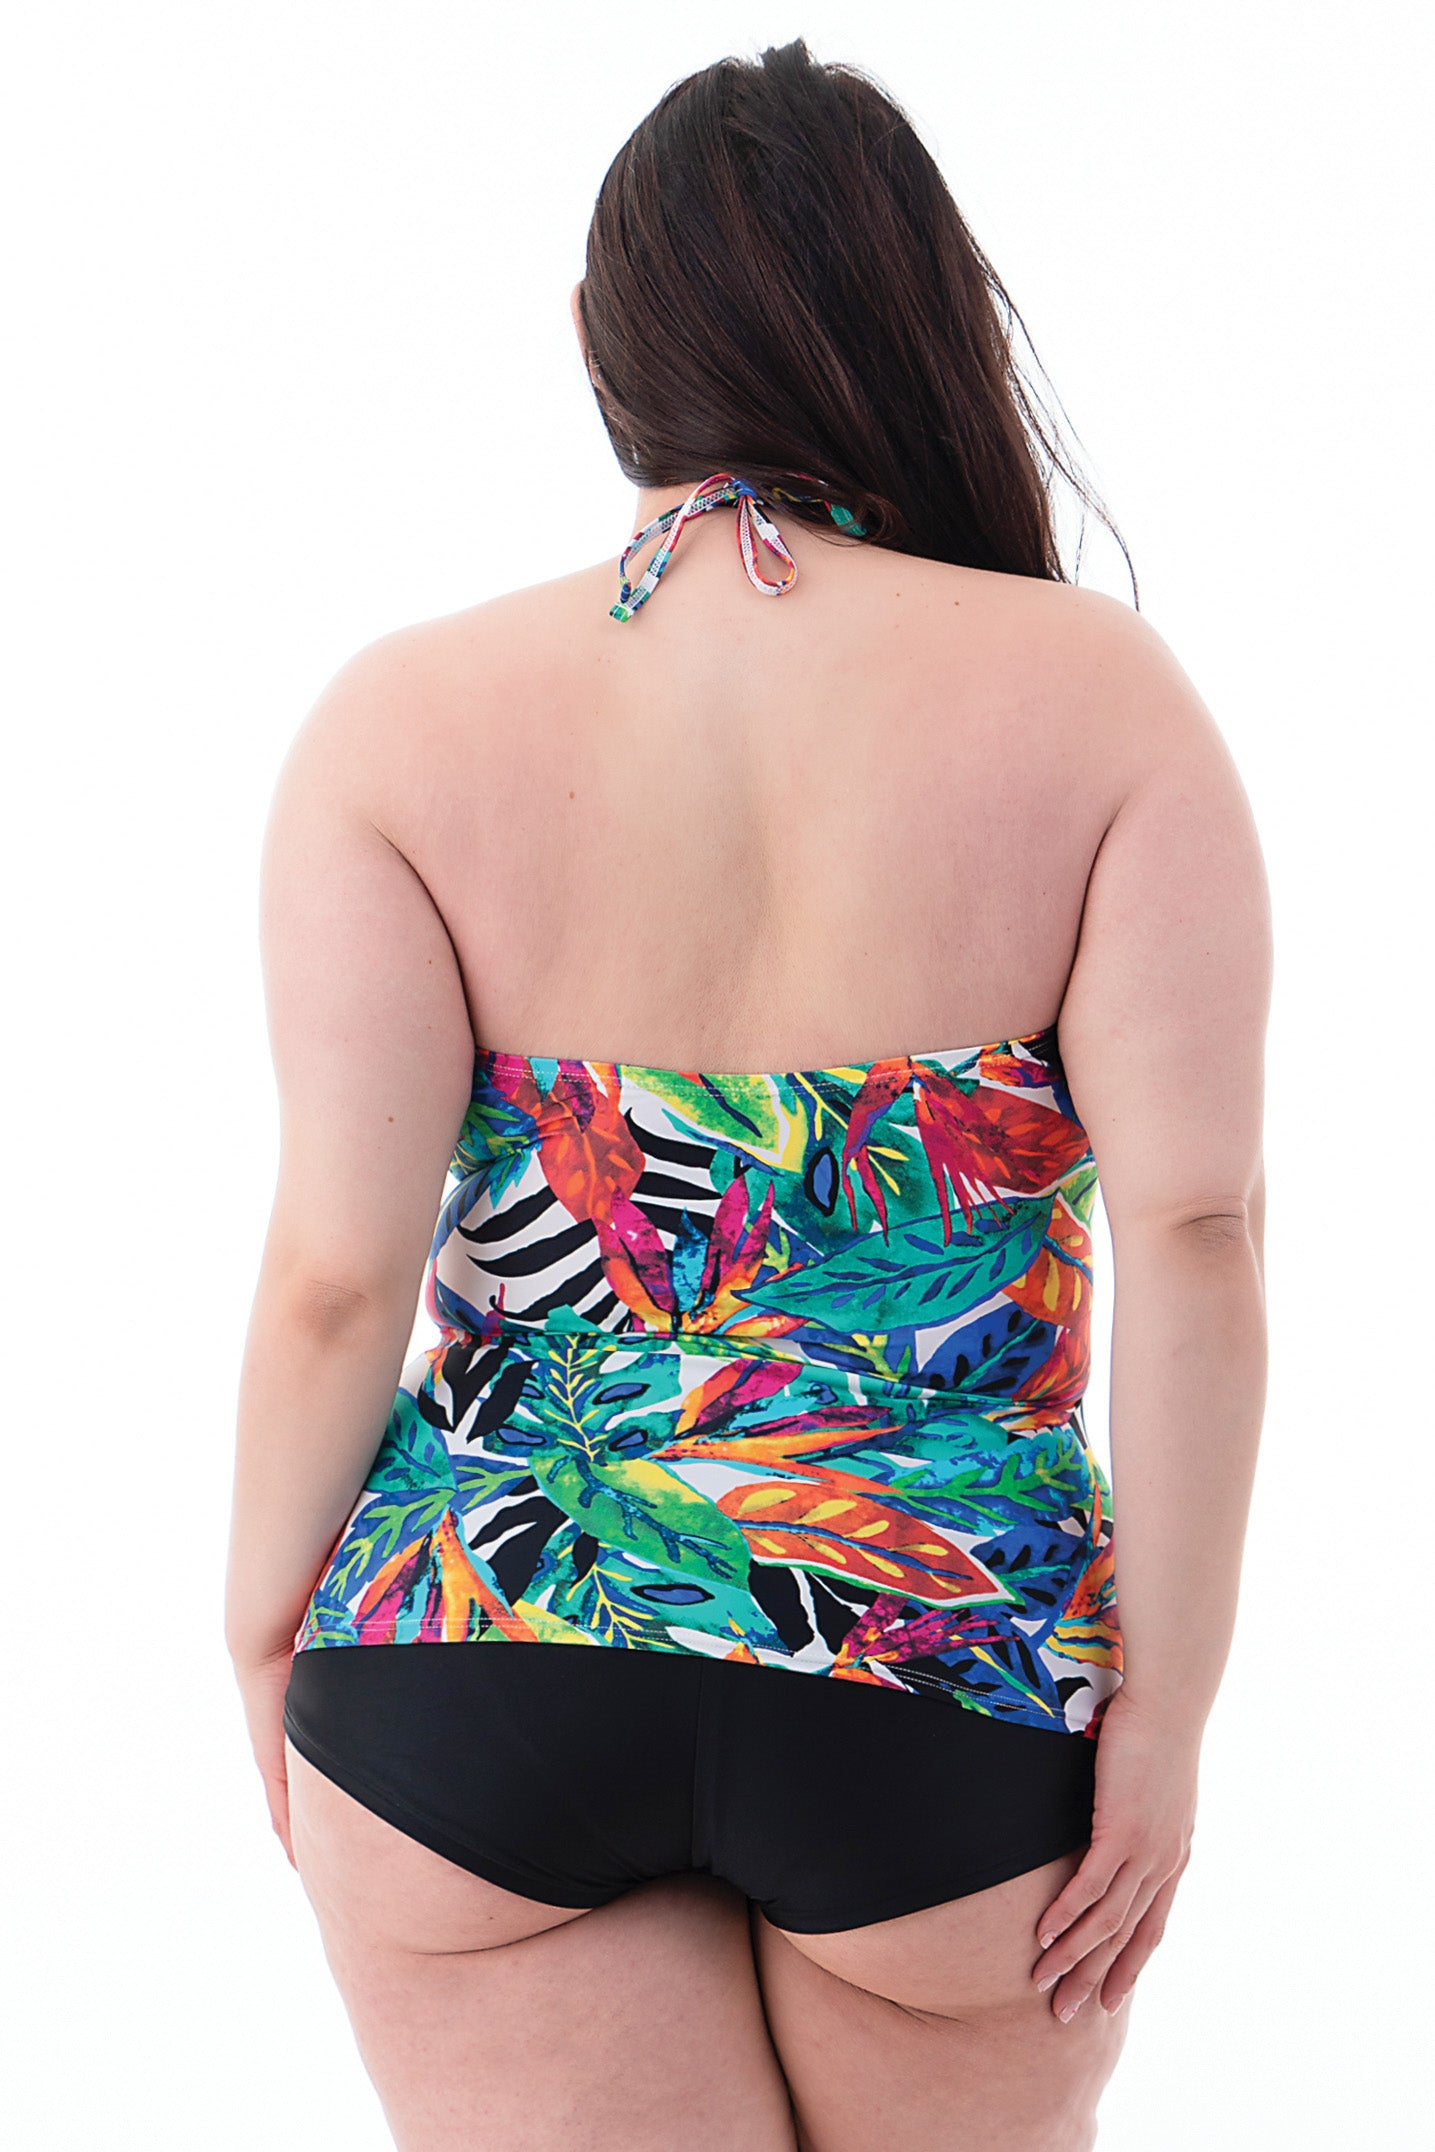 Plus Size Halter Swimsuit Top